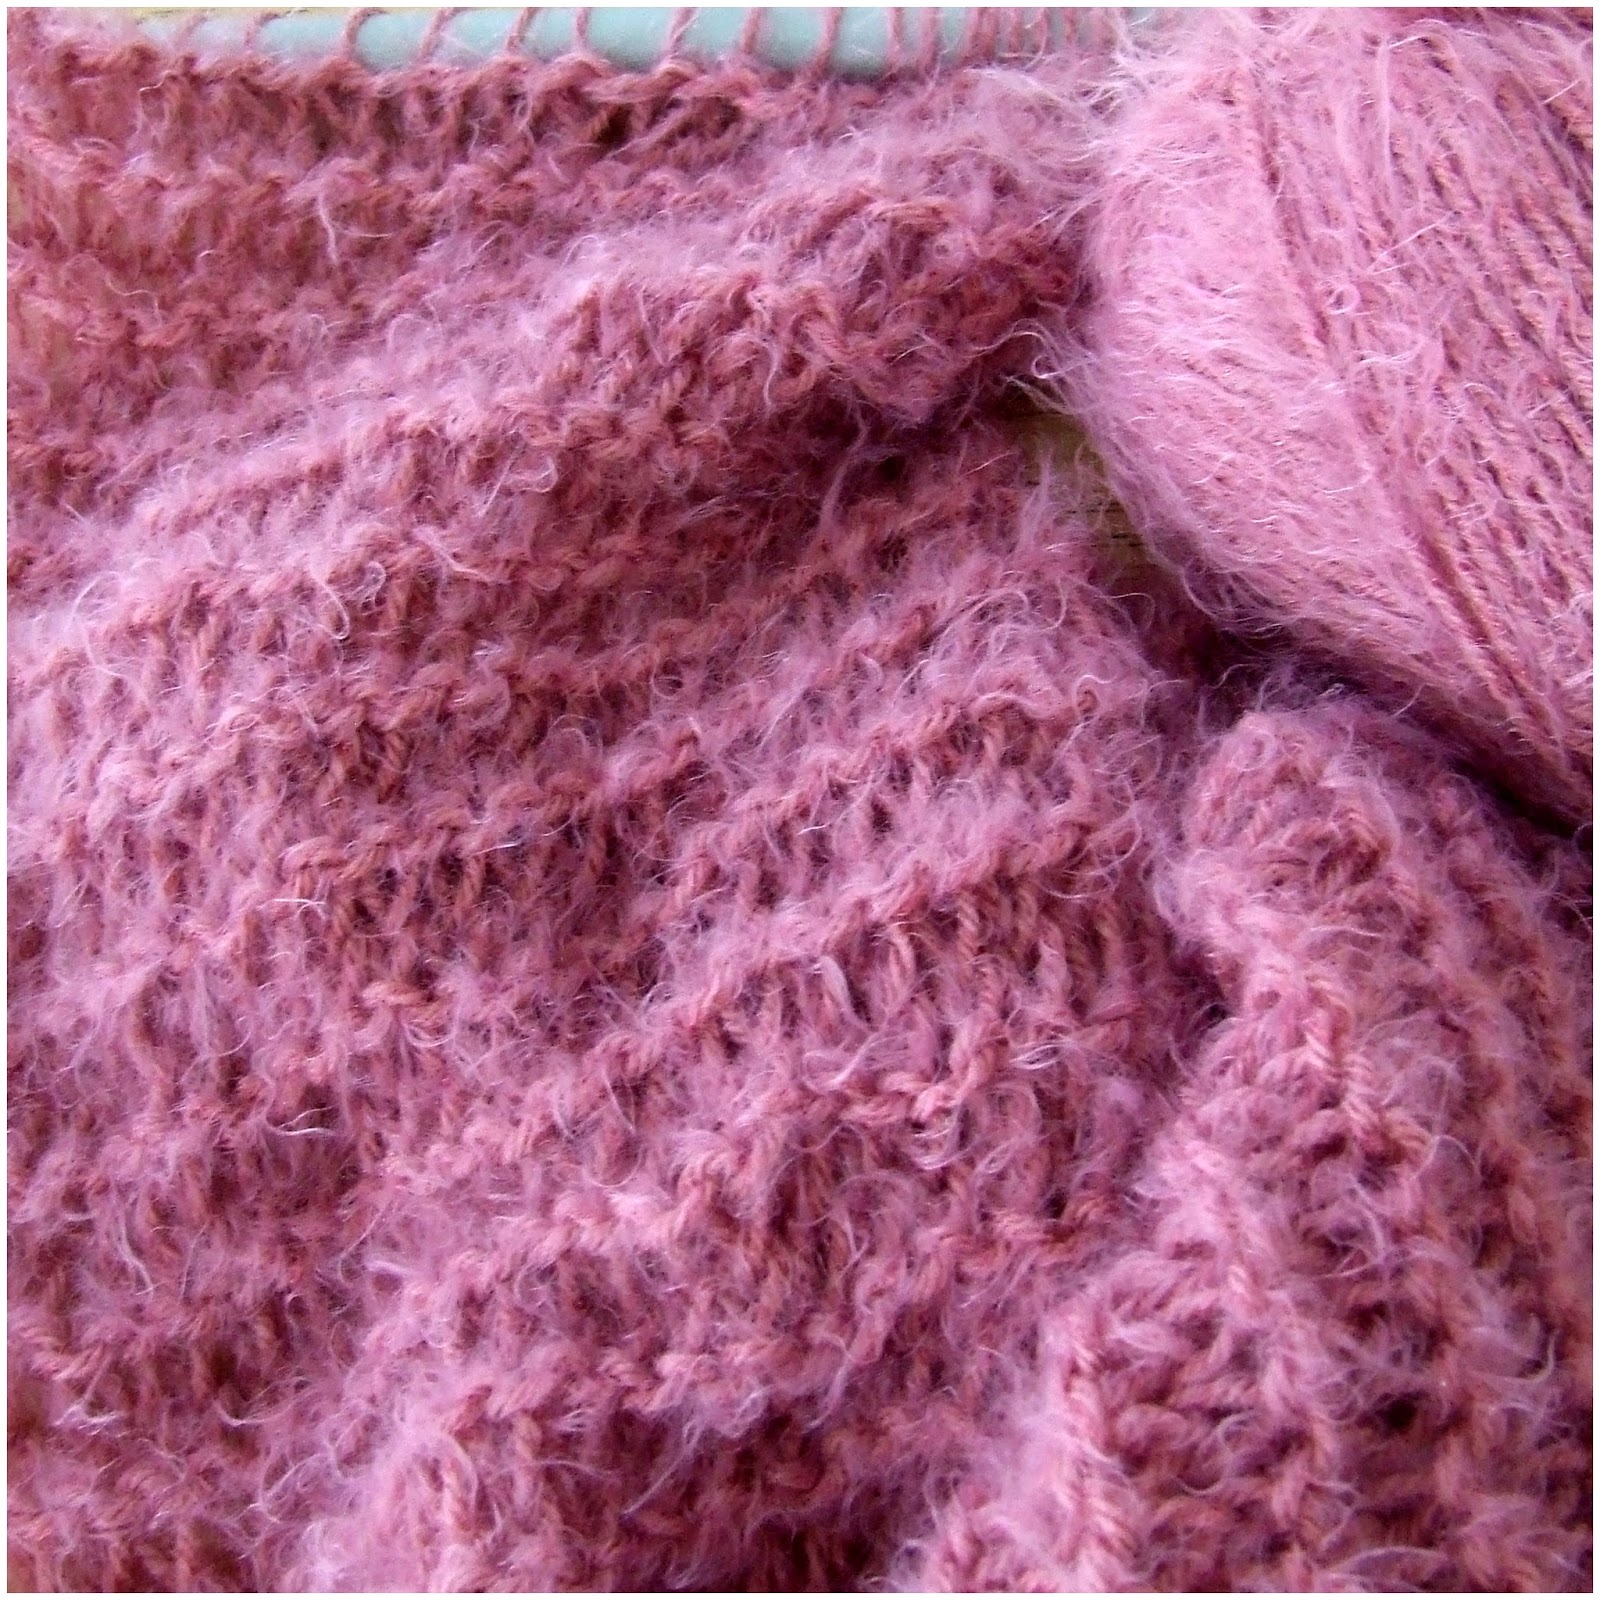 Lincraft Knitting Patterns : FitzBirch Crafts: Drop Stitch Scarf for Beginners